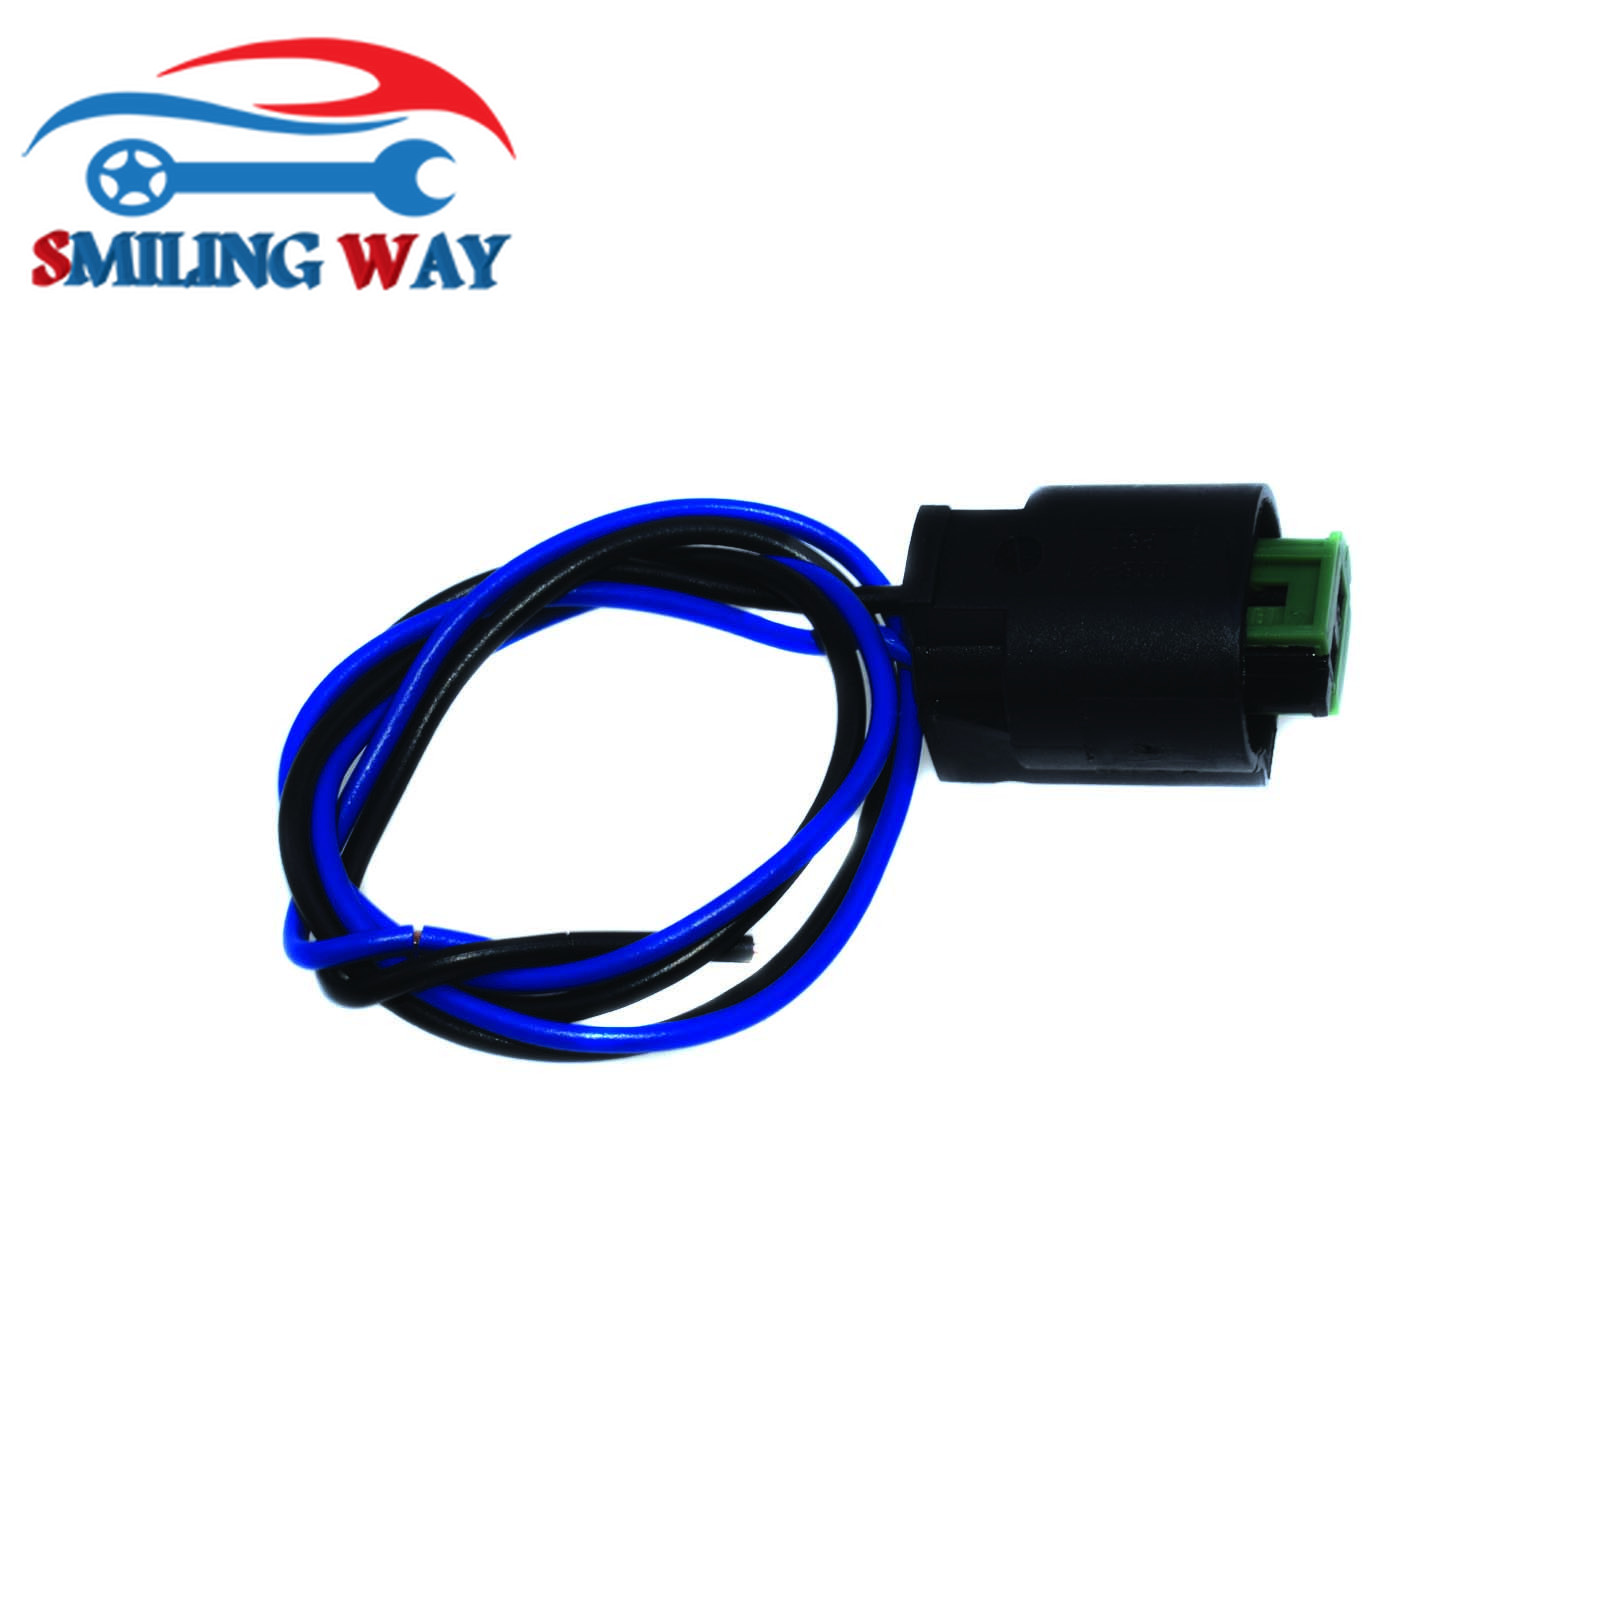 small resolution of aliexpress com buy smiling way temperature airbag sensor connector plug pigtail harness wire cable for bmw e36 e38 e46 e39 e60 e61 e66 m3 m5 z4 from